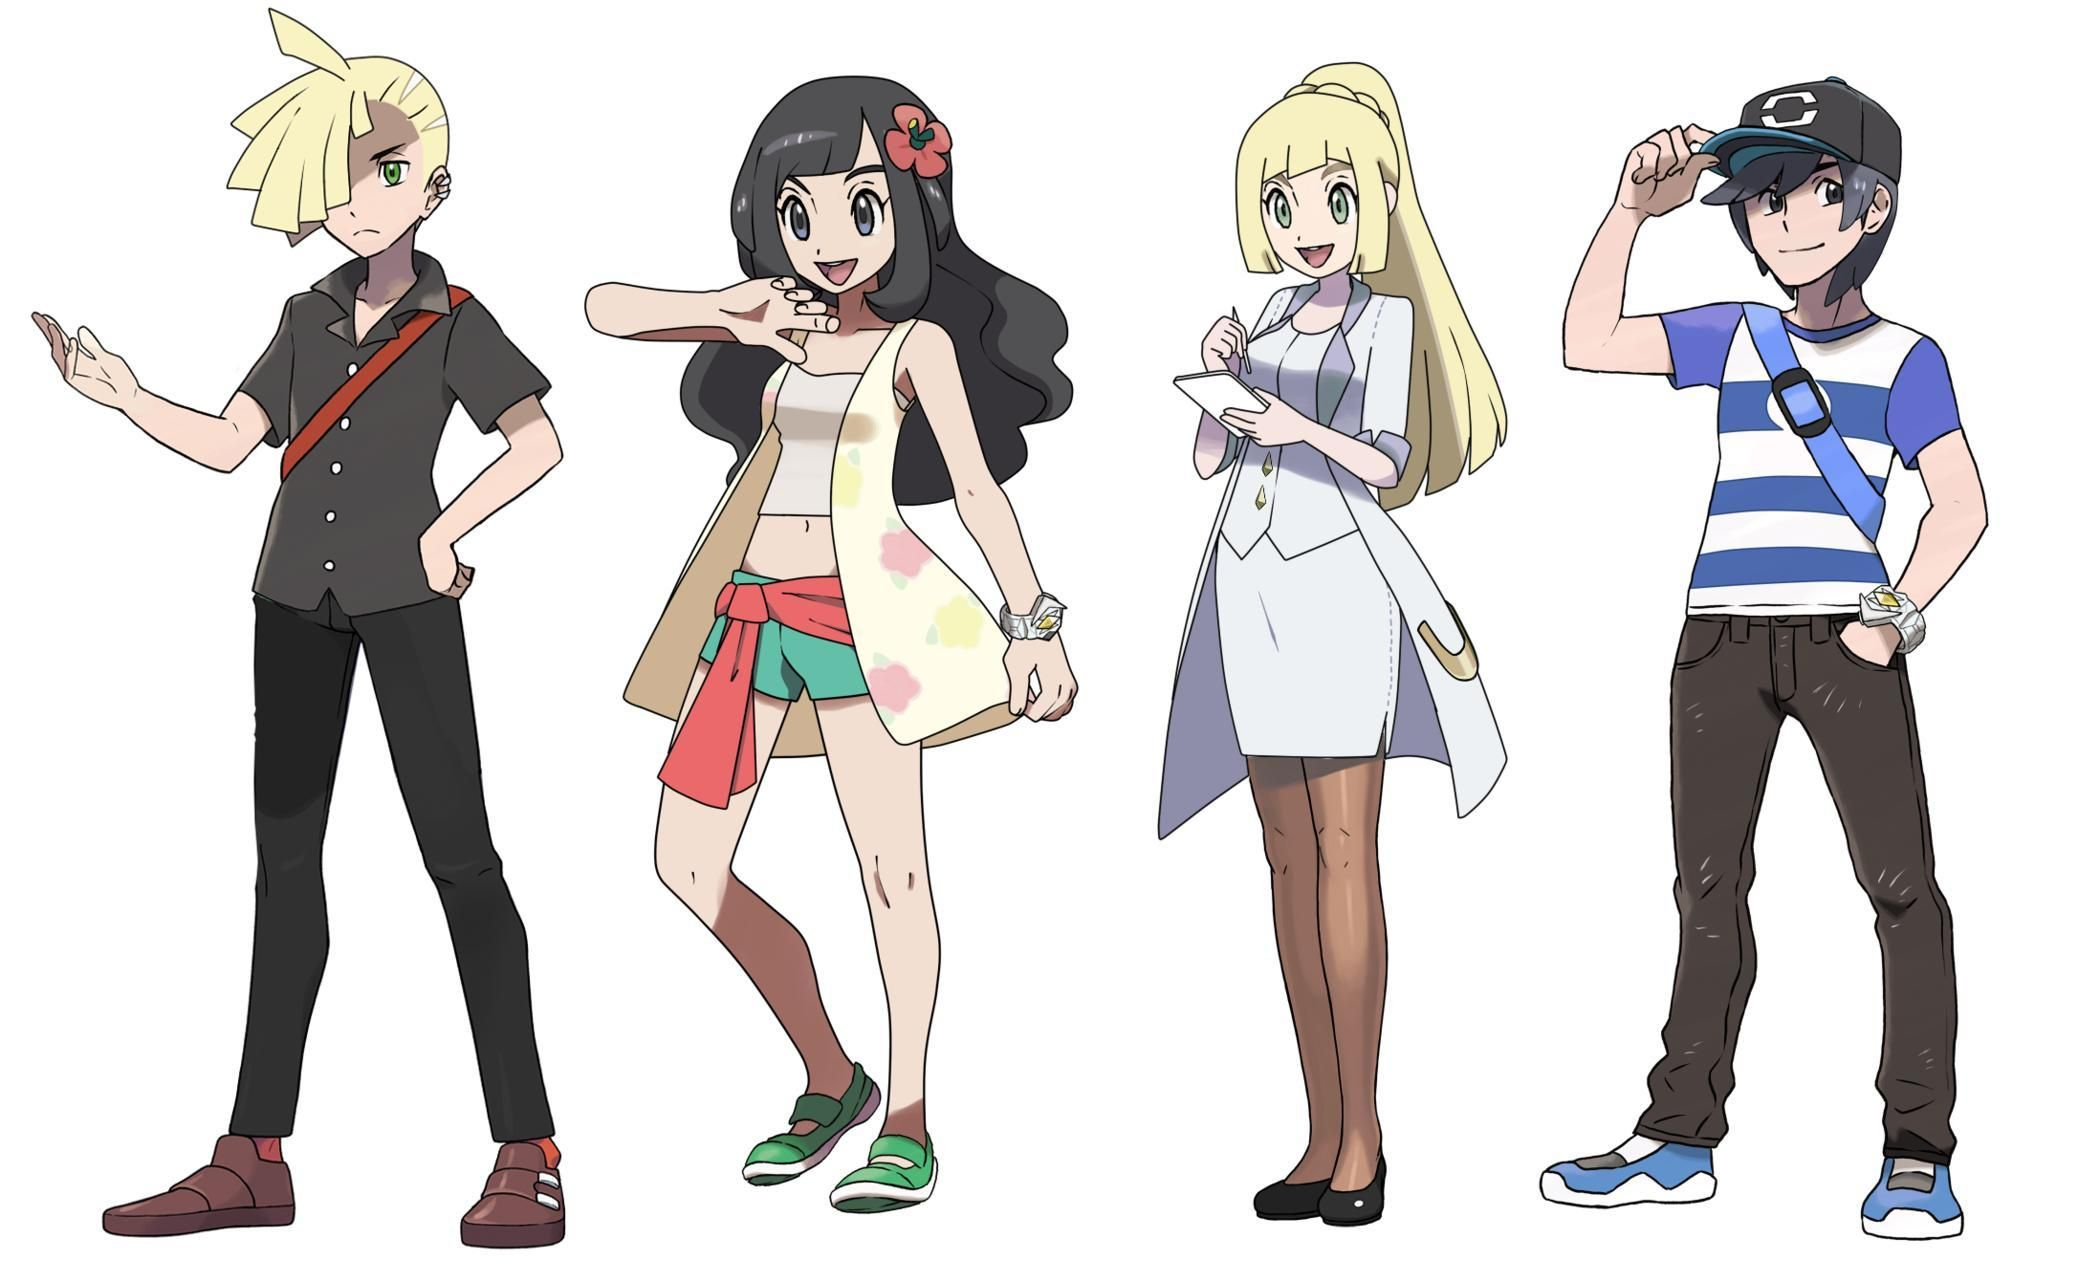 Haircut styles in pokemon sun and moon pin by abu on pokemon characters  pinterest  pokémon anime and